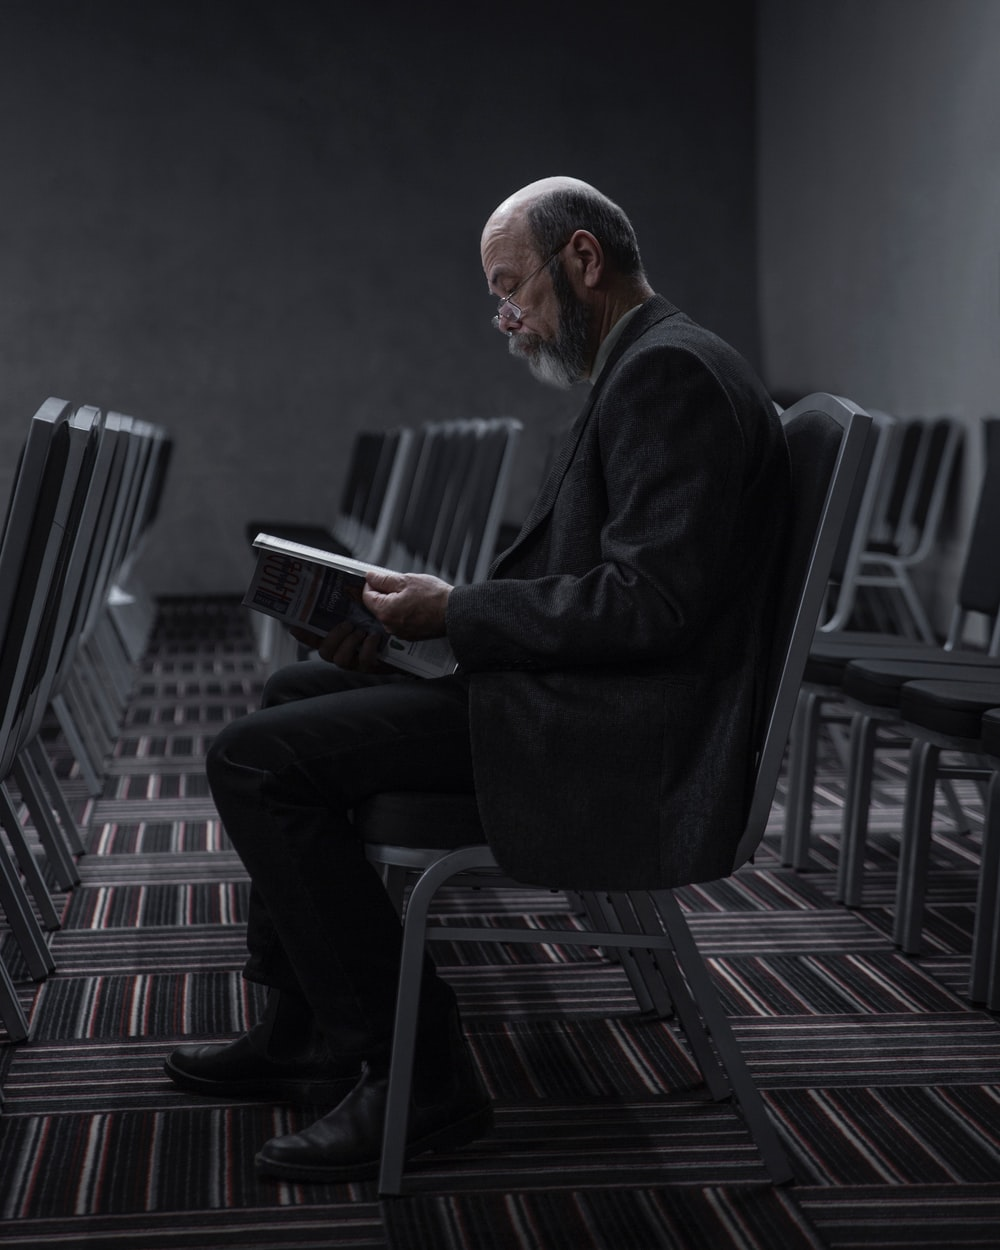 man in black suit sitting on chair